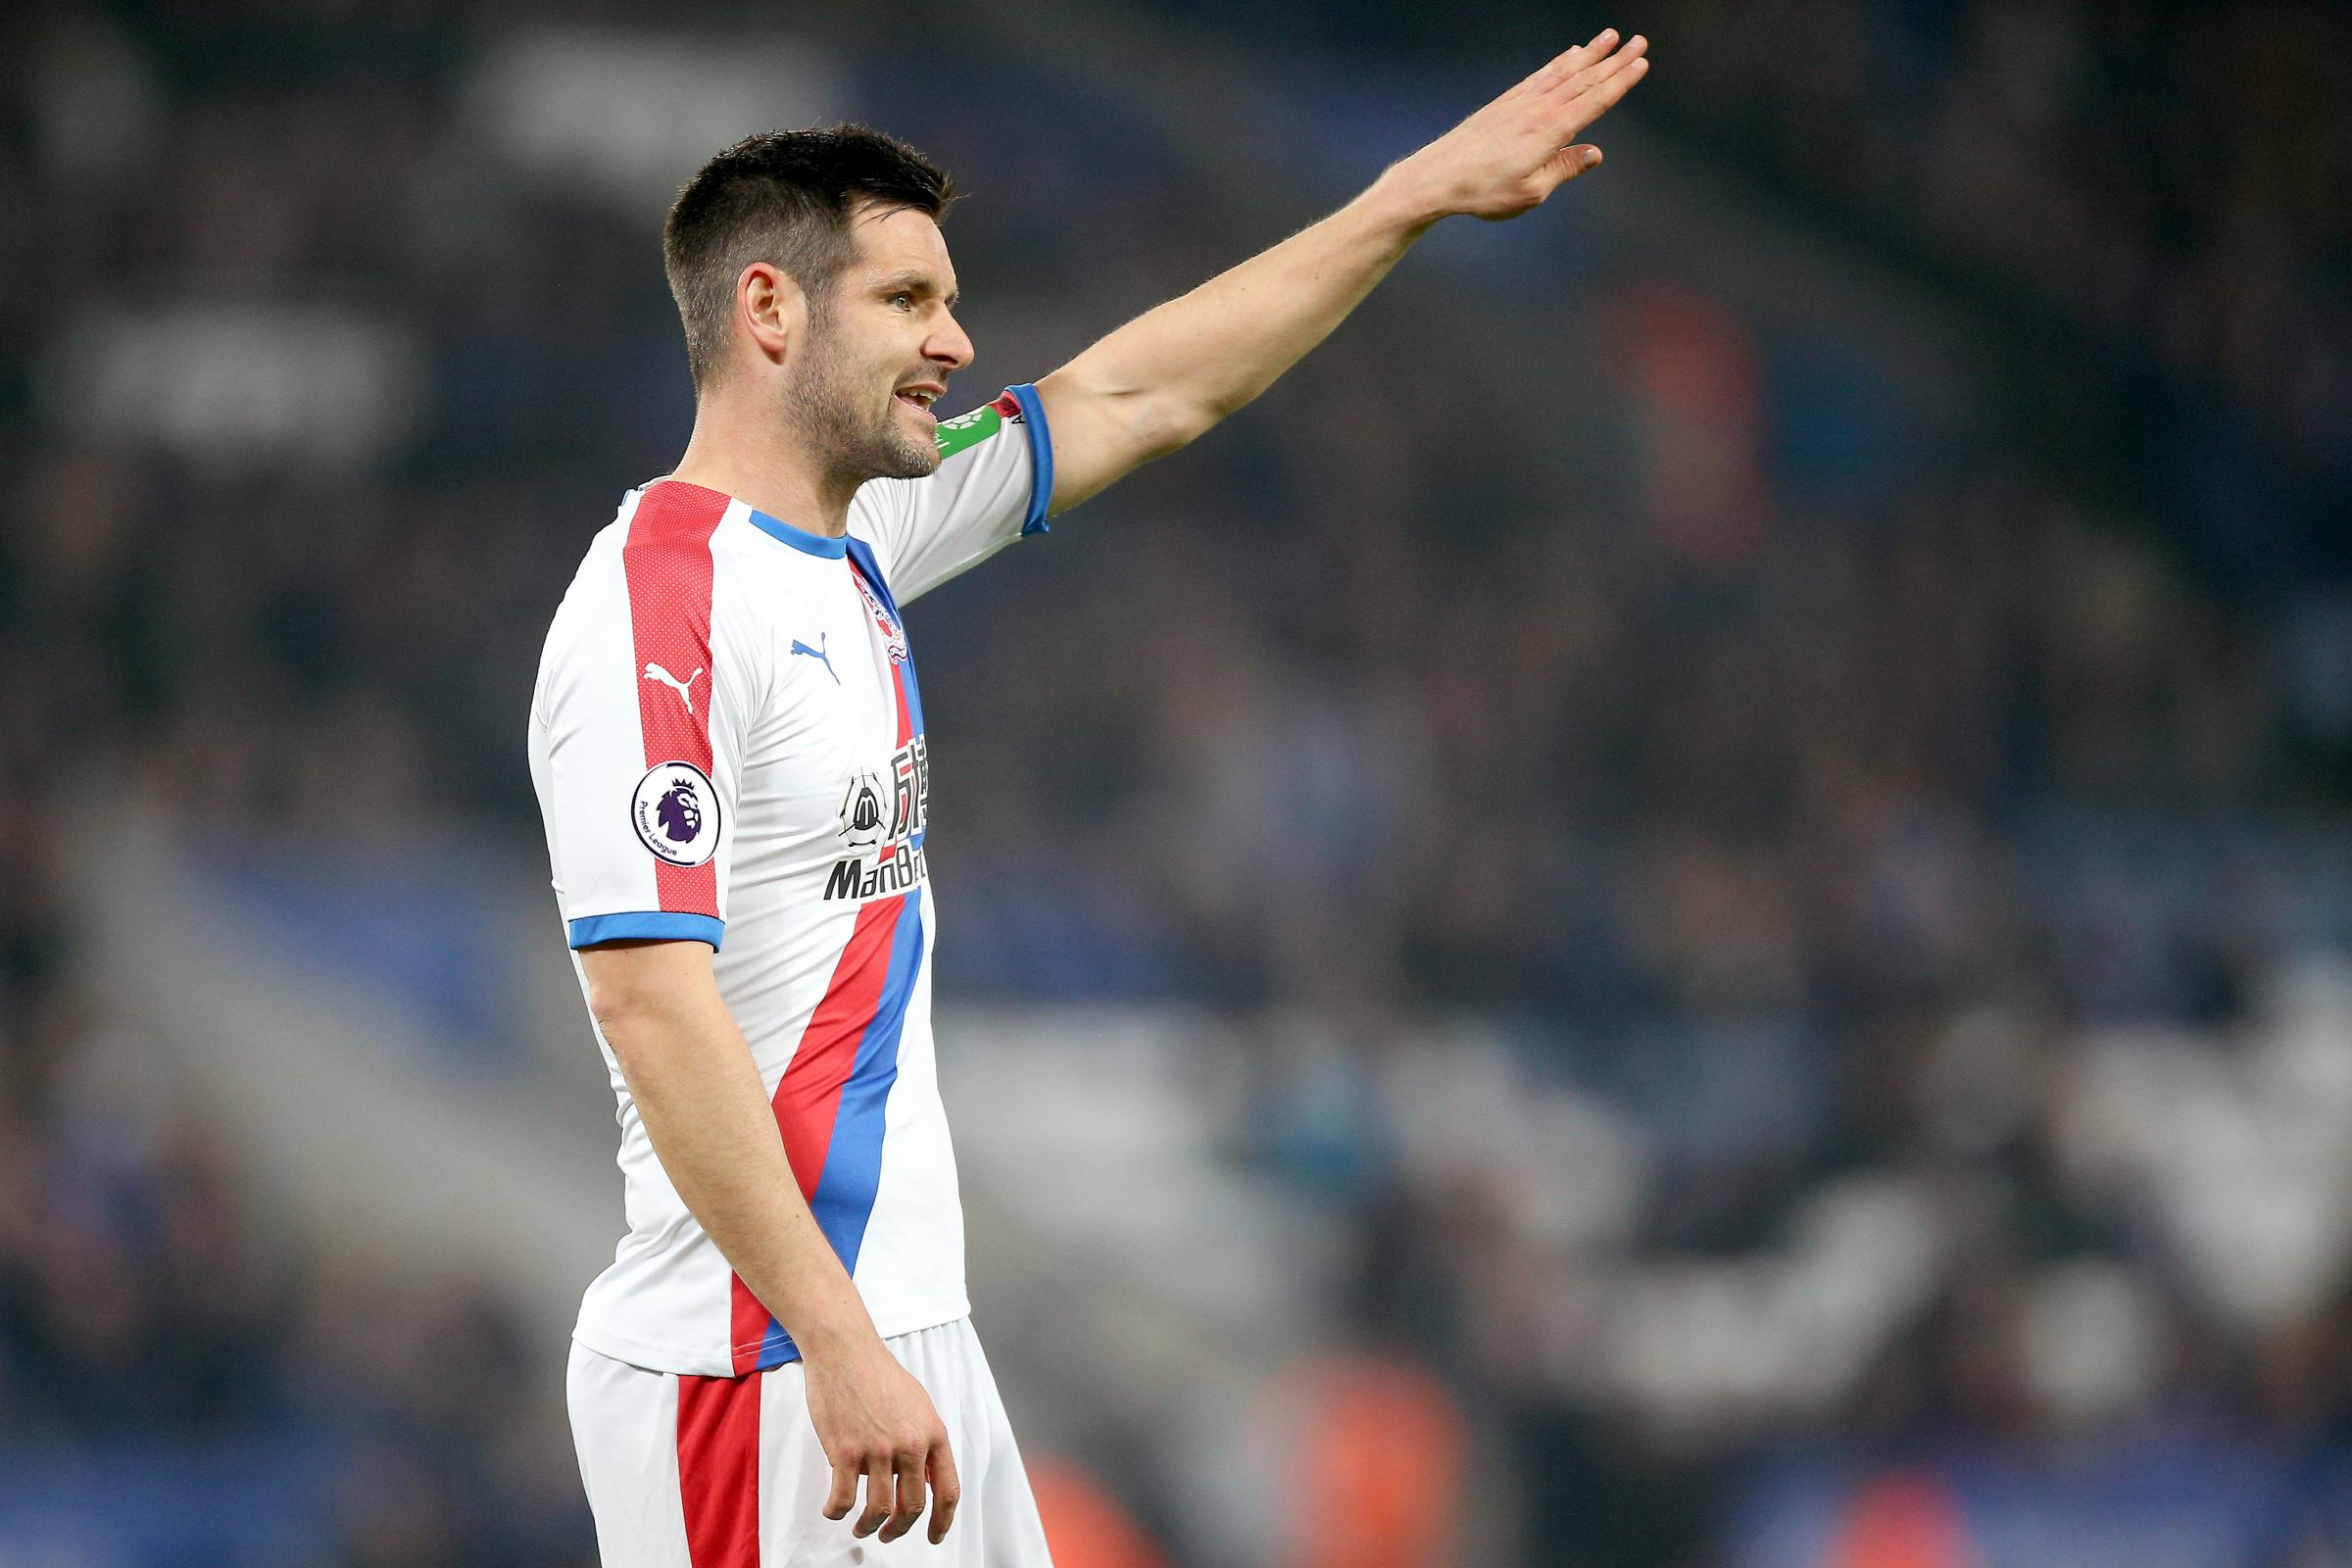 'You don't get there many times in your career' - Palace defender on Wembley journey